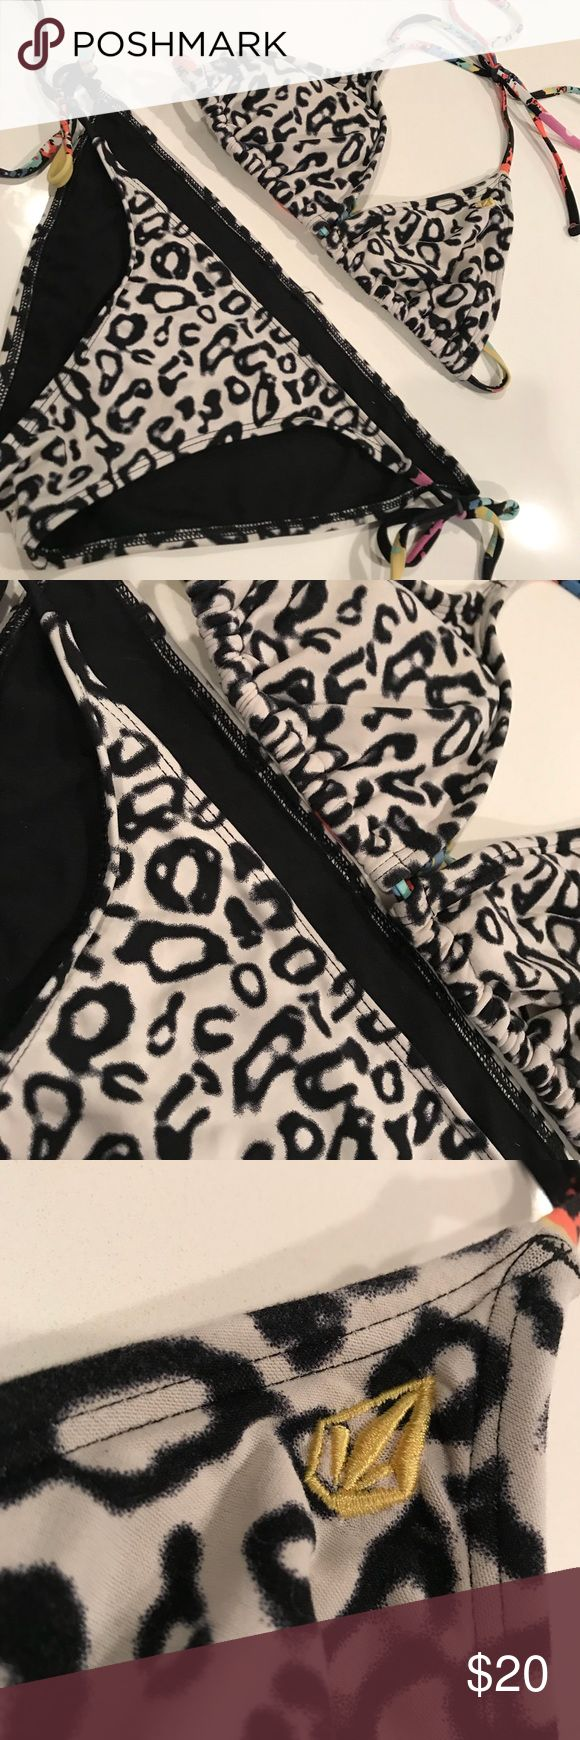 Volcom Leopard Print Bikini Set! Women's black and white with colorful strings, Volcom Bikini Set! Includes both pieces: triangle bikini top and bottoms that tie on the side so you're  able to adjust to the most comfortable fit! Both are size small and worn lightly with no major flaws ! Lots of life left! Volcom Swim Bikinis